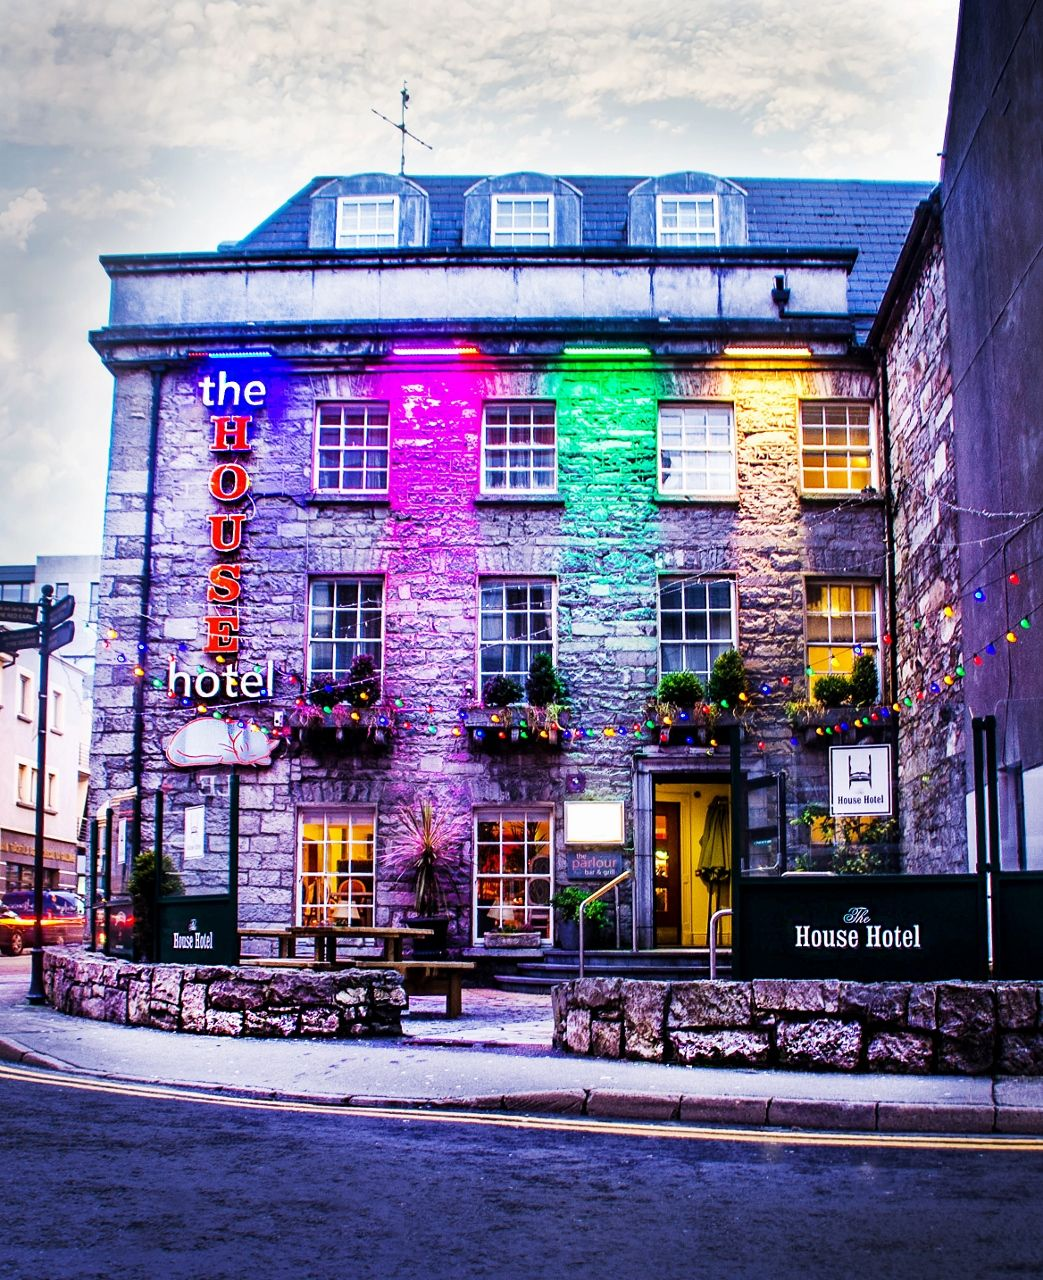 House Hotel In Galway Ireland